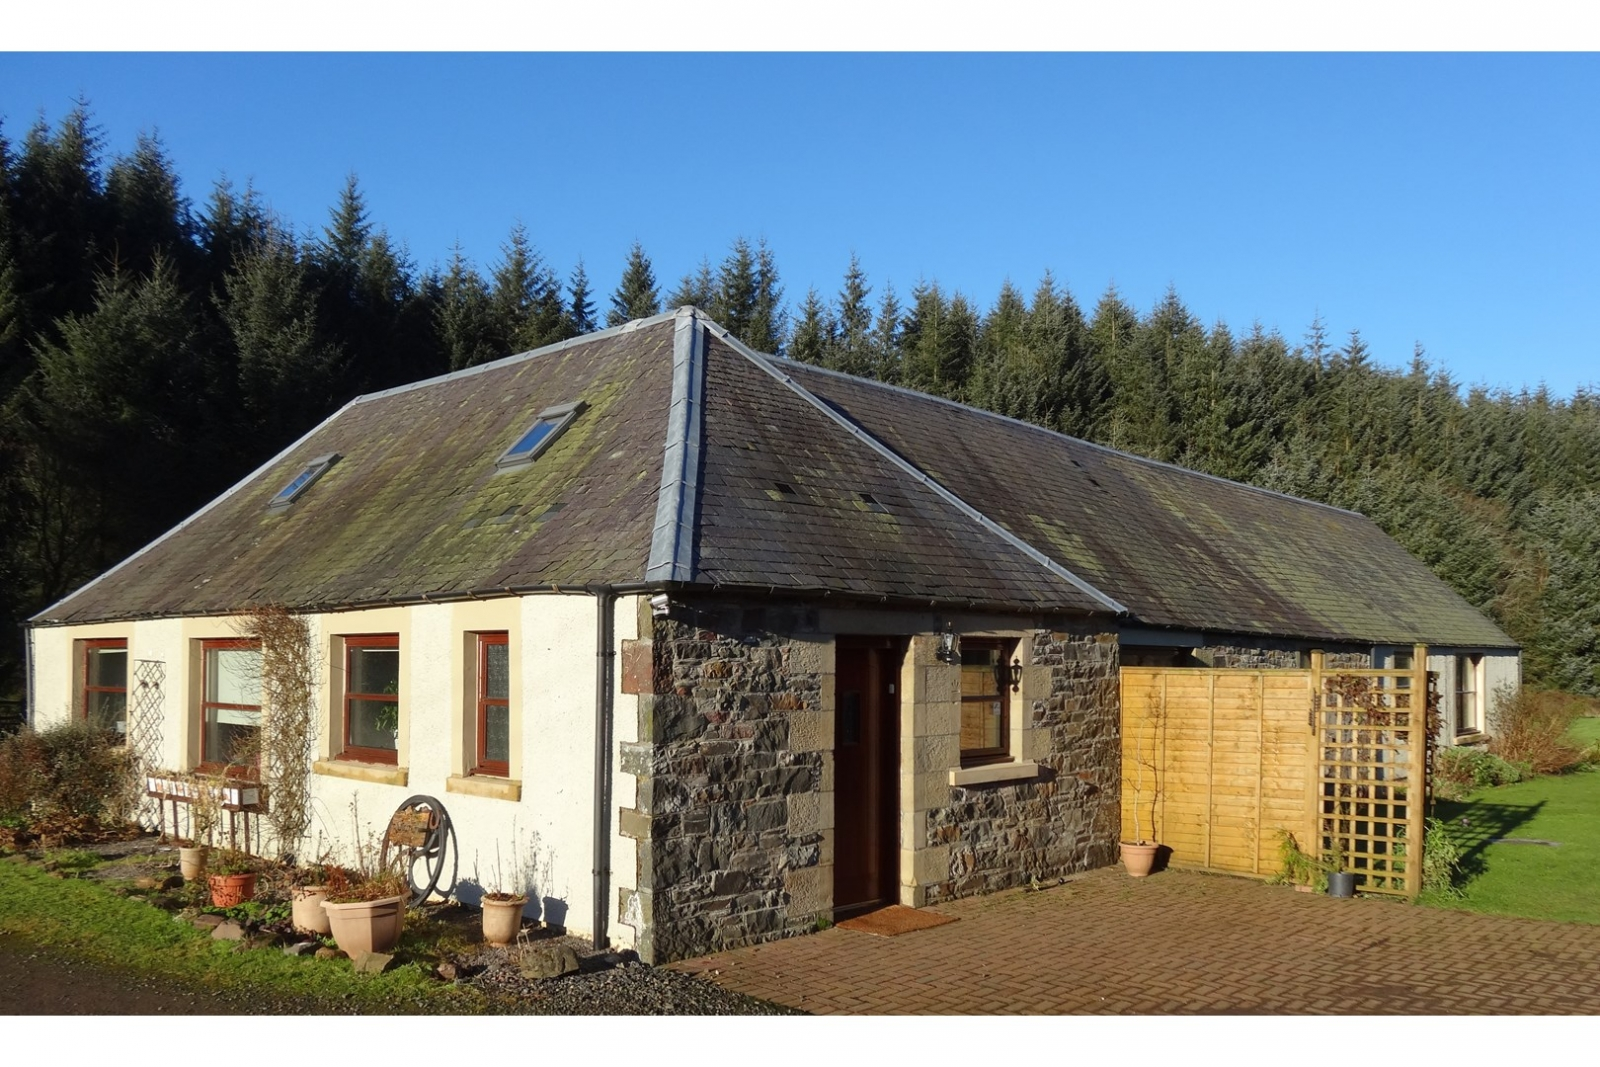 Scotland property hideaway homes for sale on zoopla for Modern house zoopla